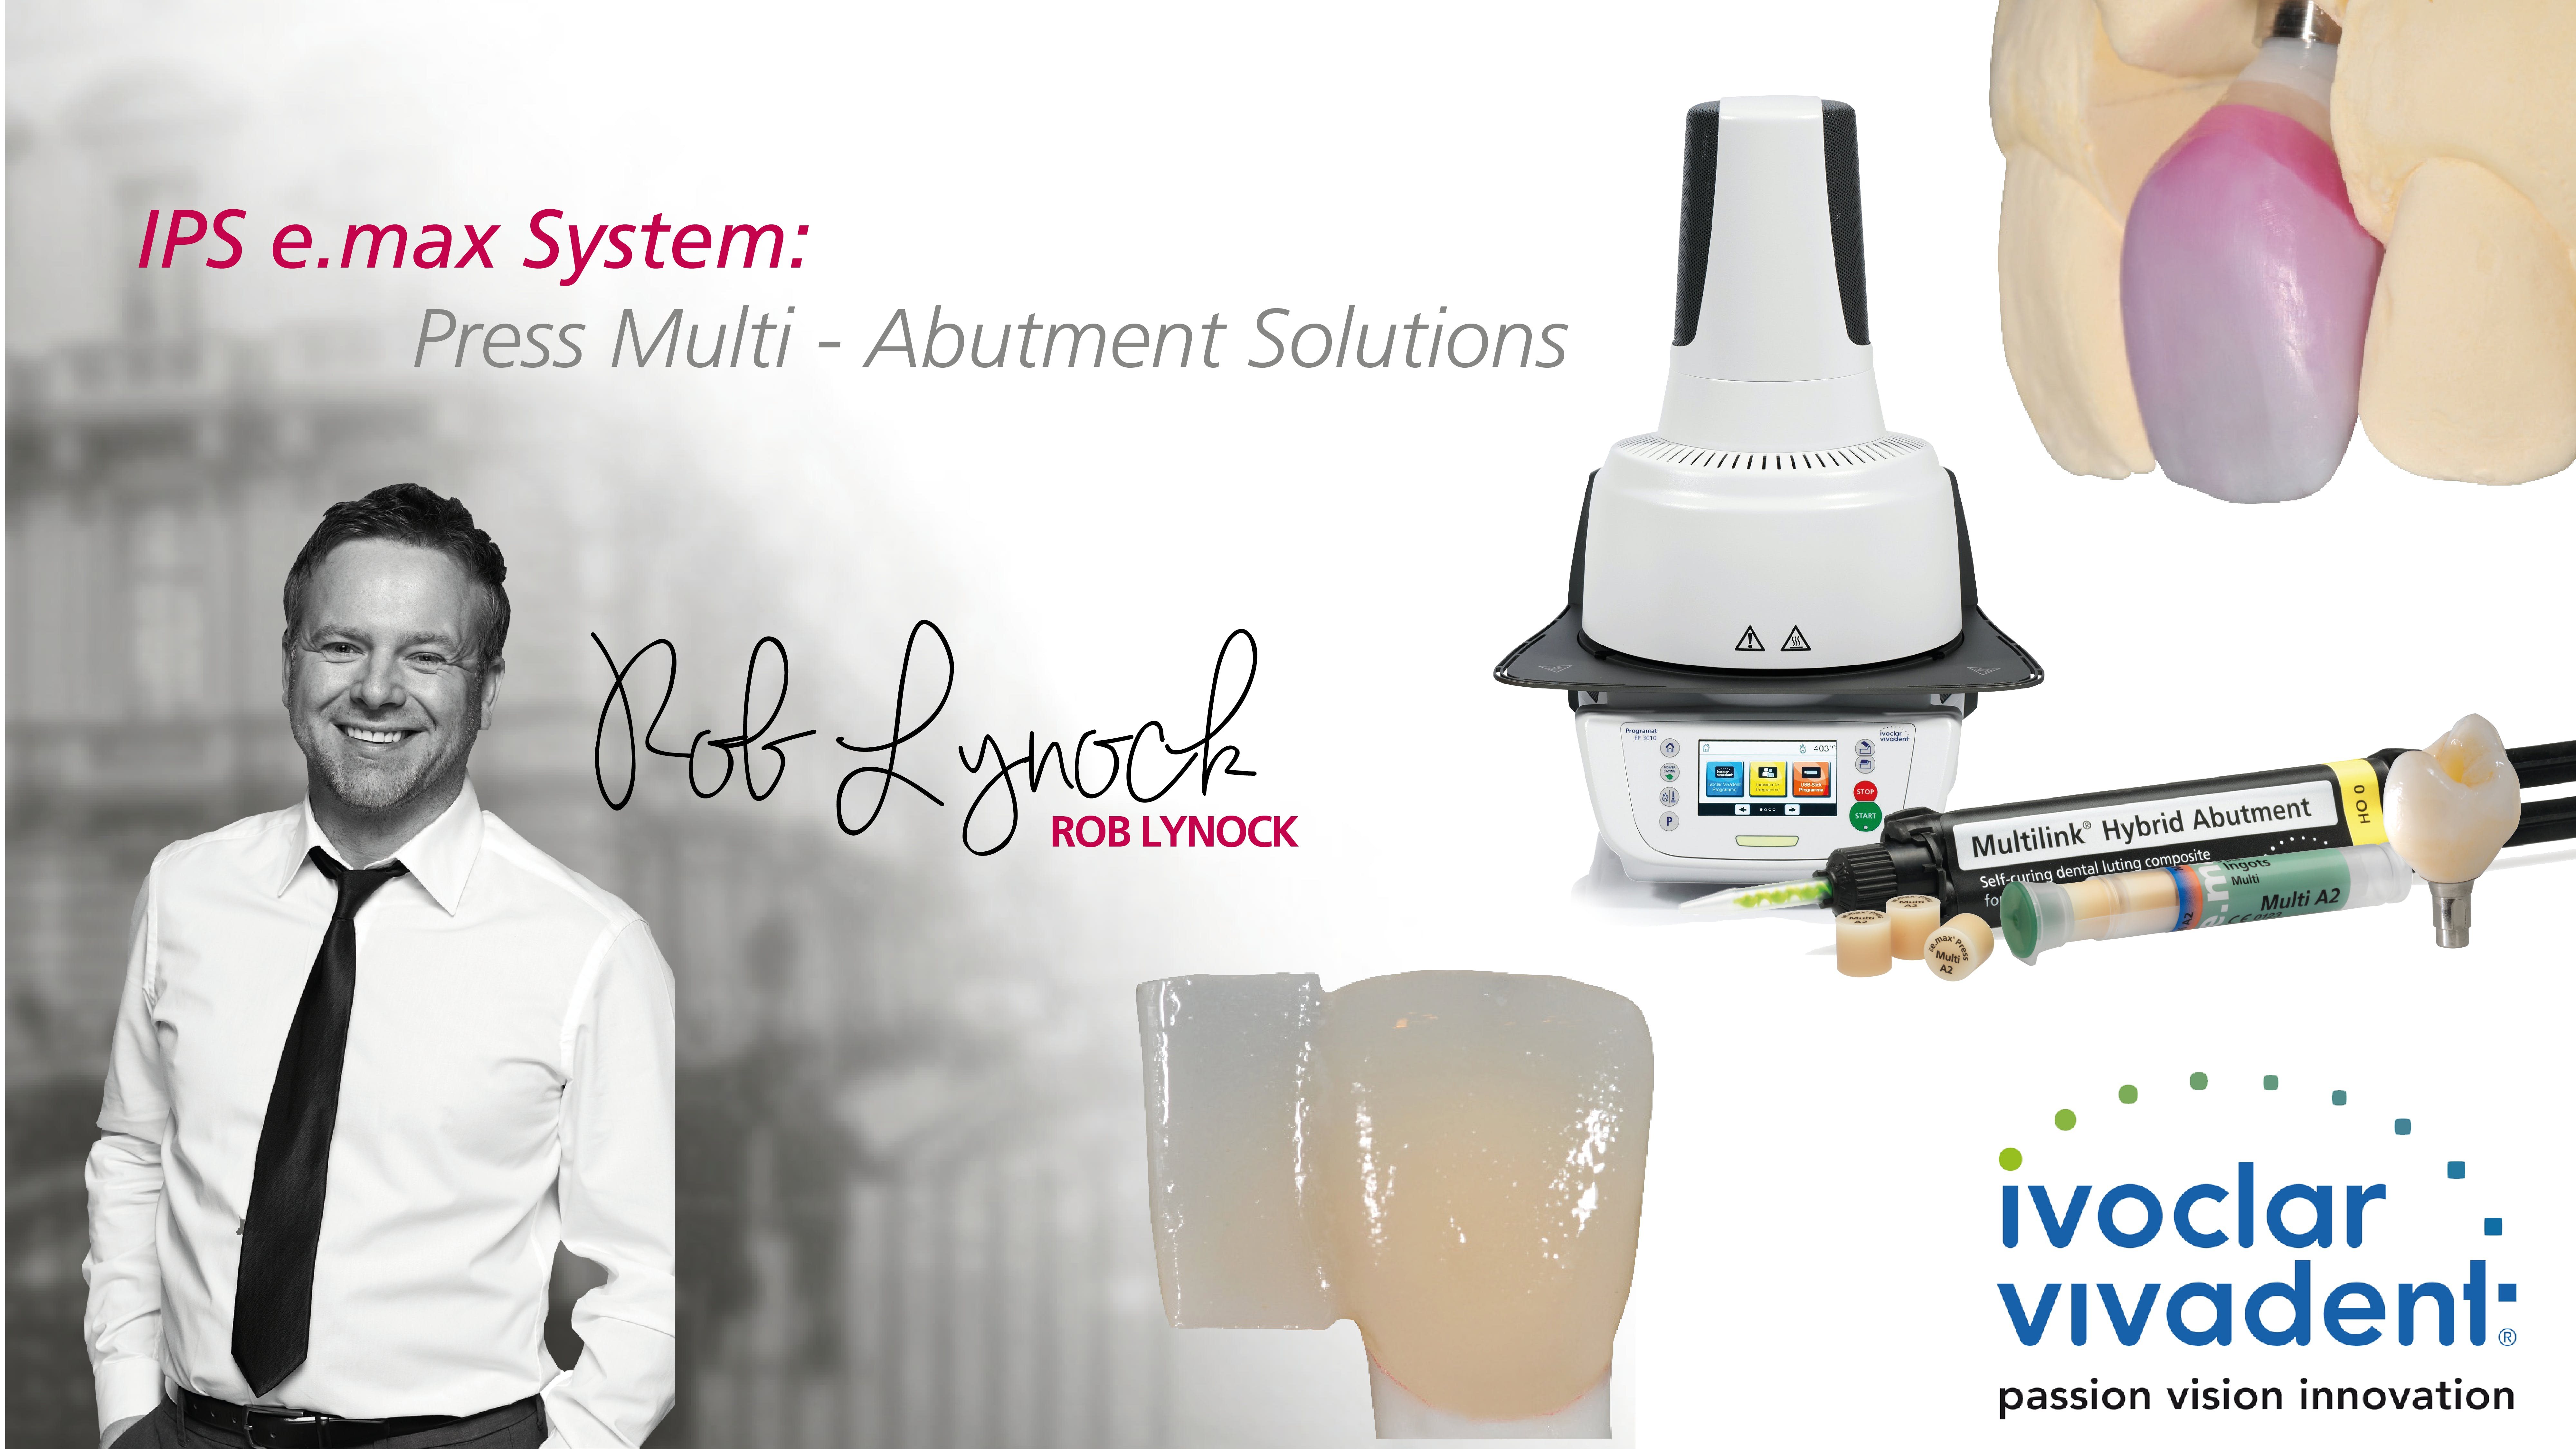 IPS e.max System  Press Multi  Abutment Solutions with Rob Lynock